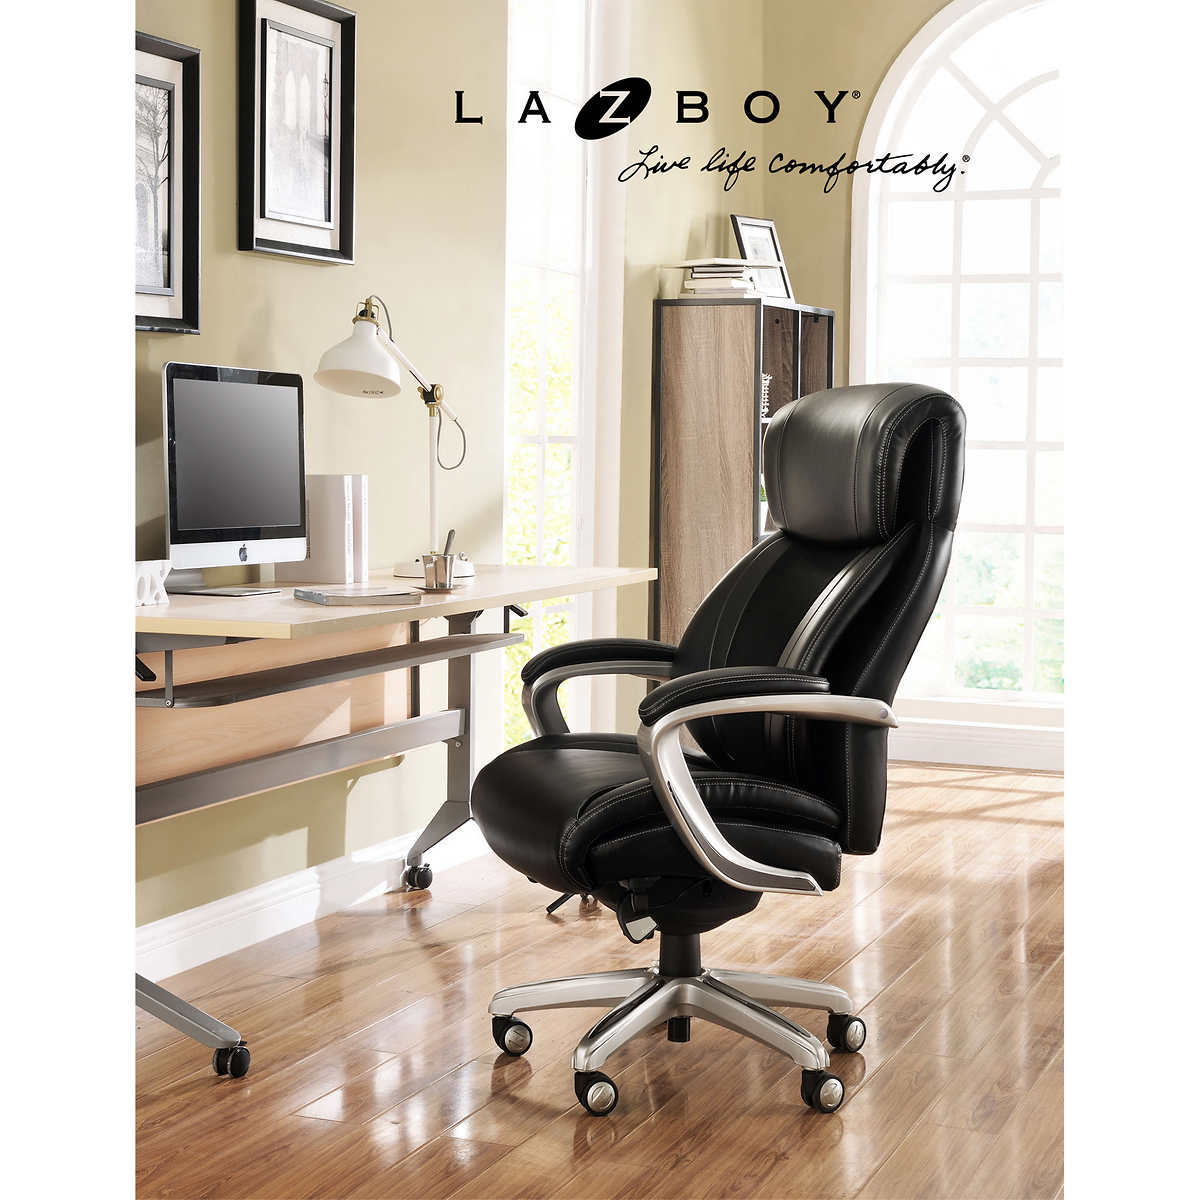 la z boy executive chair costco chairs